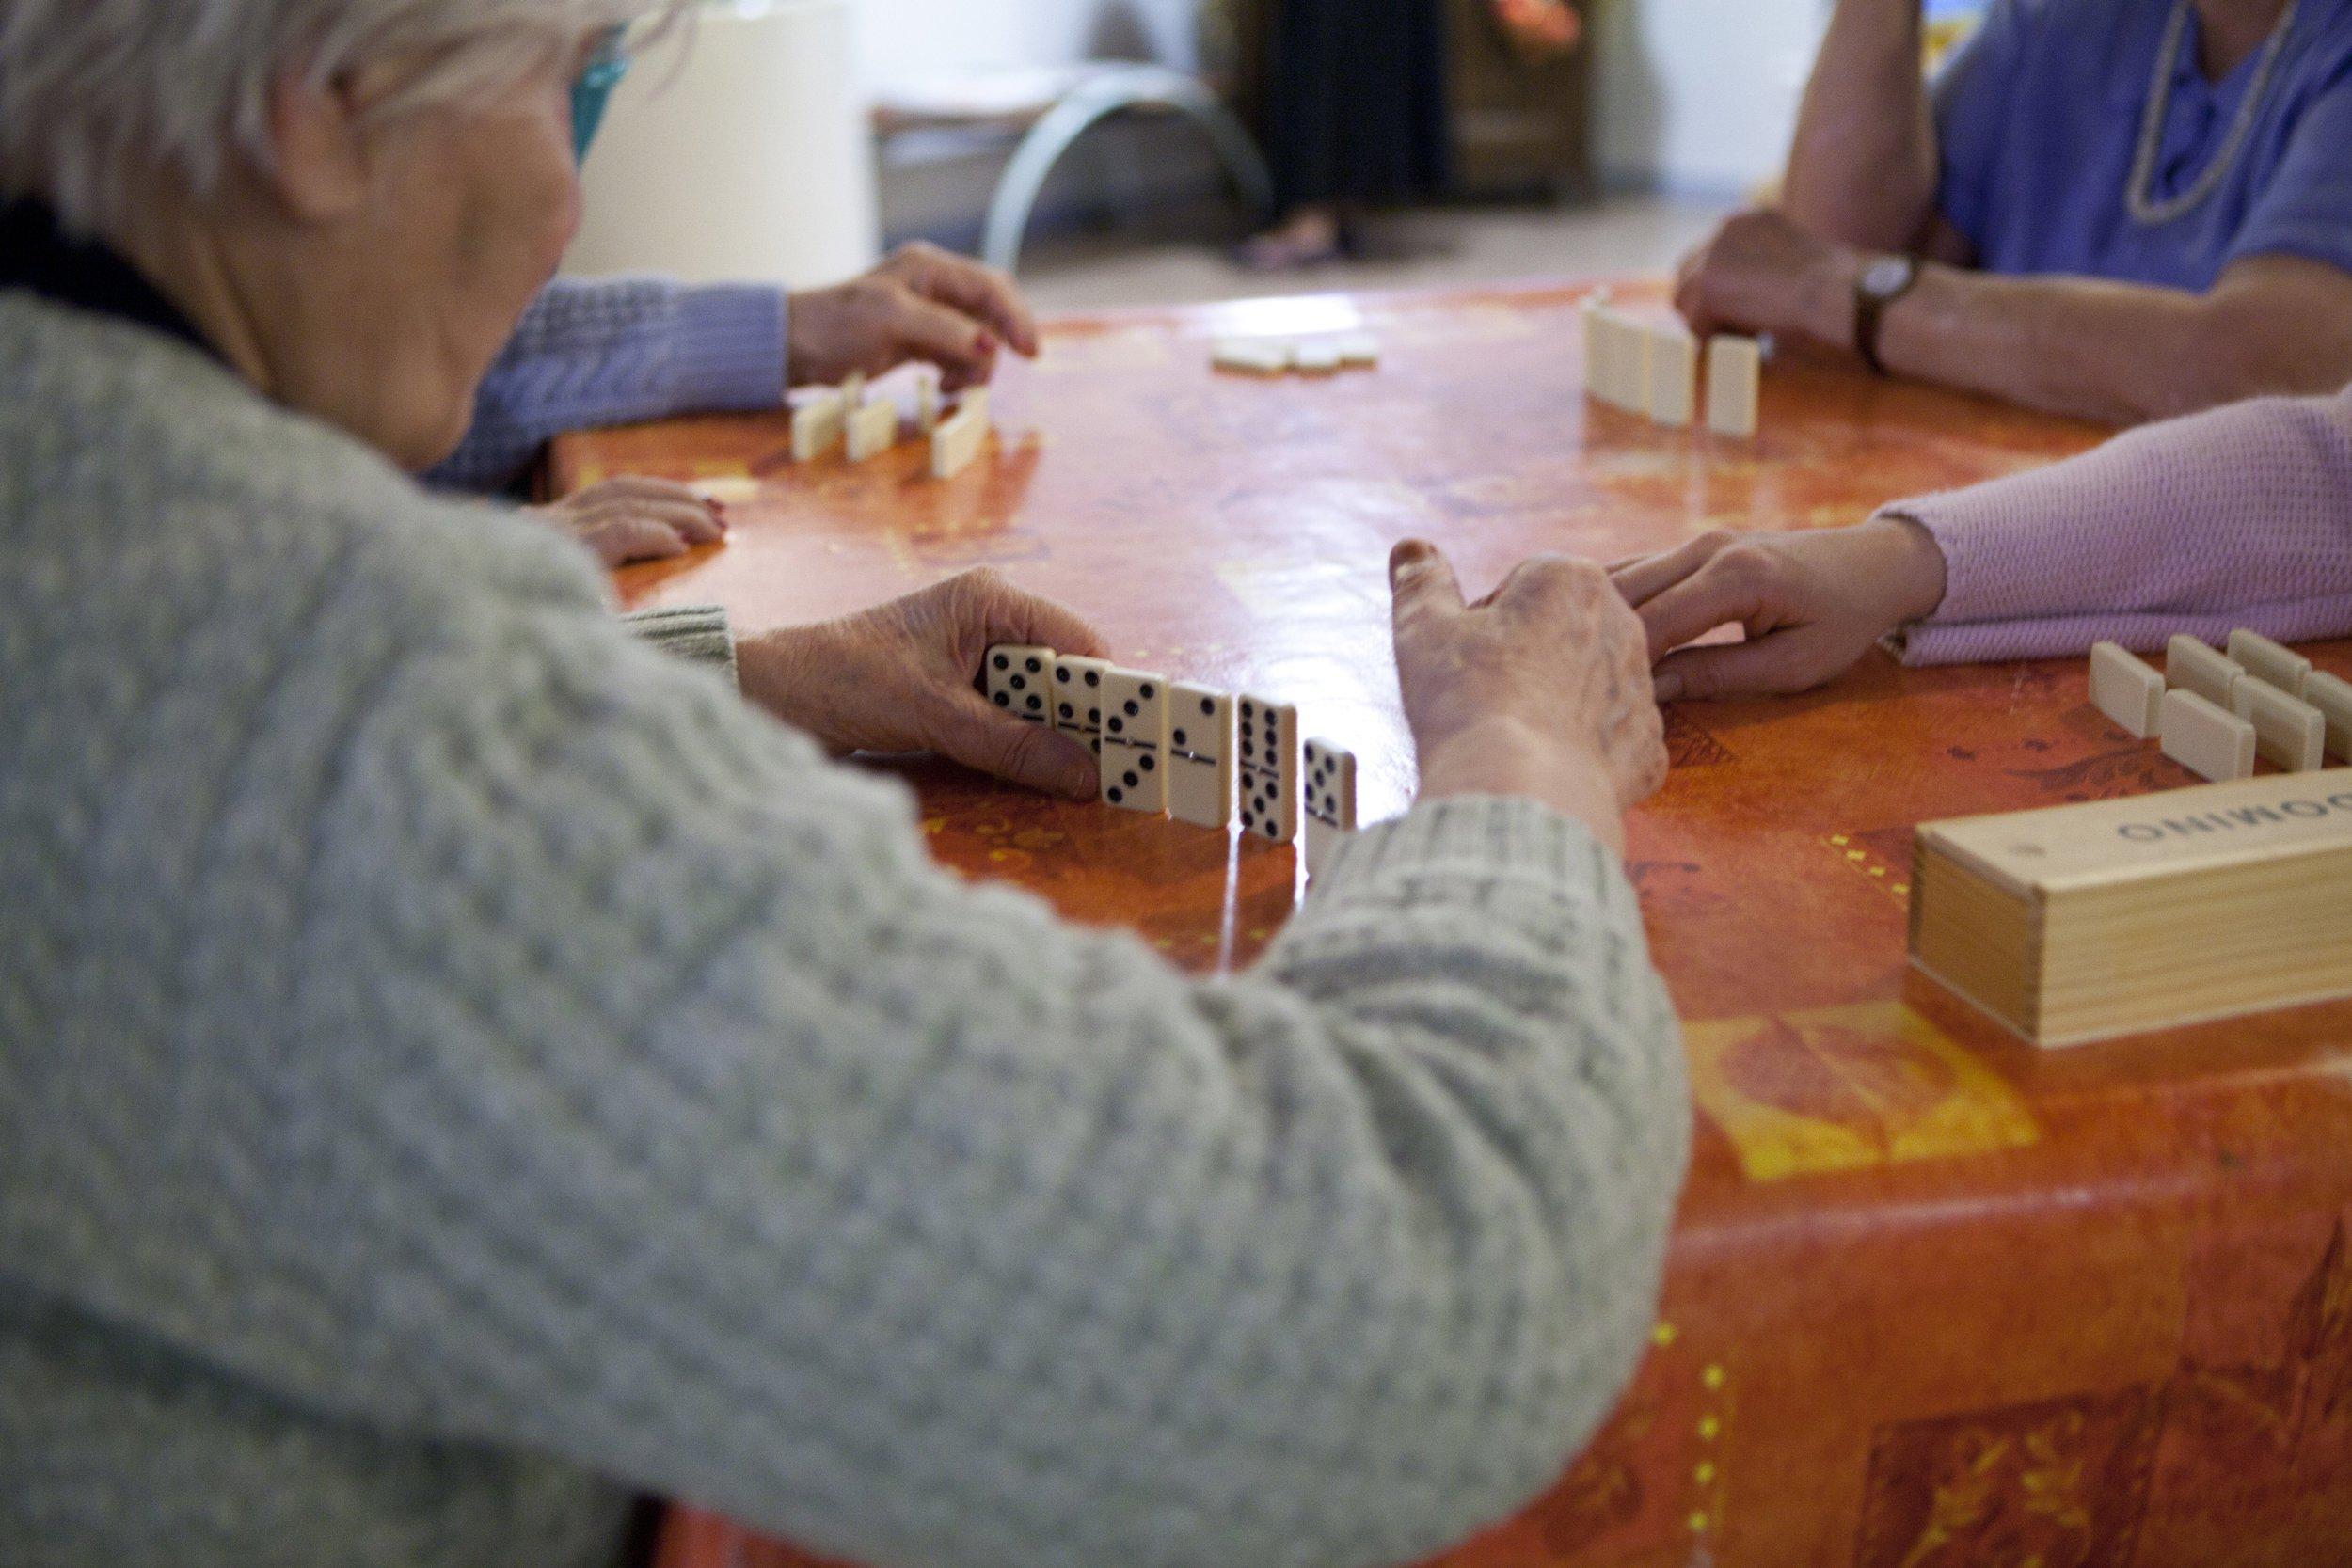 A retirement home at an Alzheimer's unit is seen in this file photo. (BSIP/UIG/Getty Images)